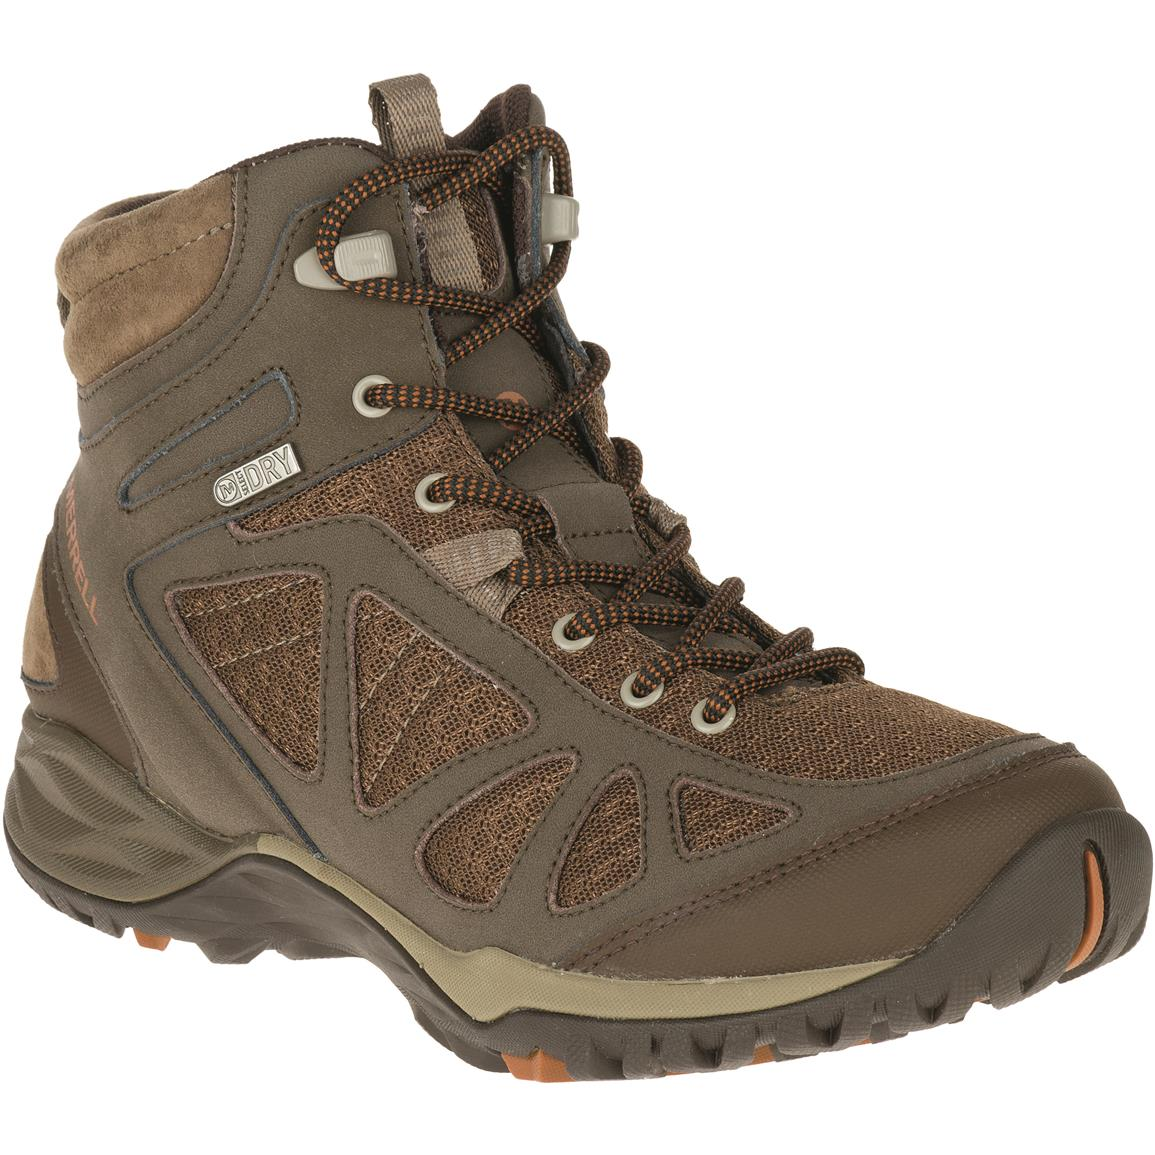 Merrell Women's Siren Sport Q2 Waterproof Hiking Shoes, Slate Black